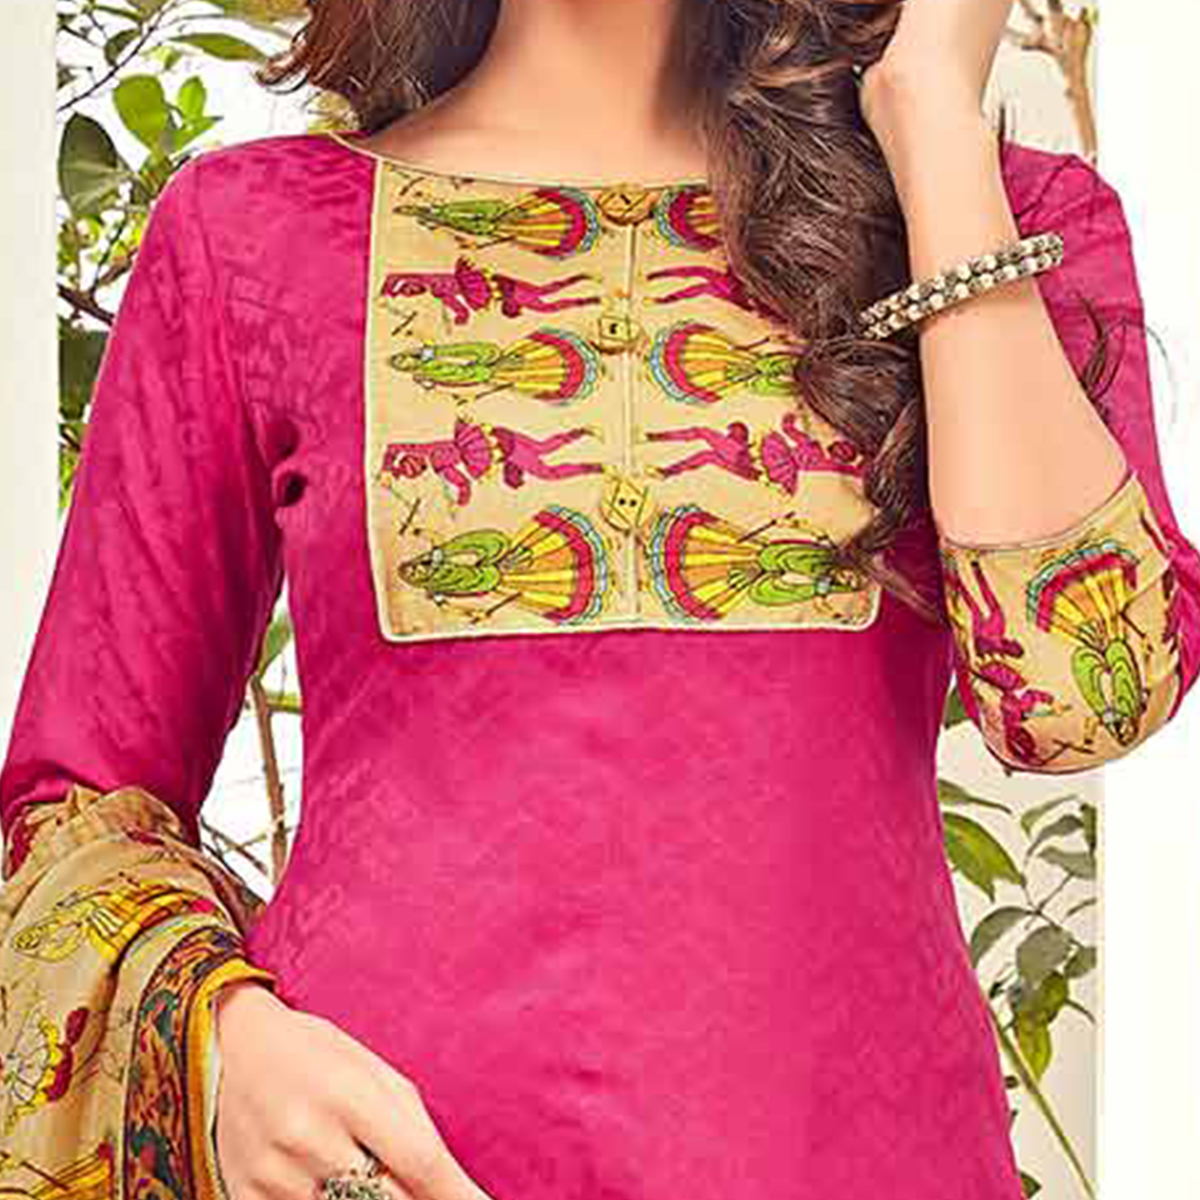 Stunning Hot Pink Printed Cotton Blend Suit